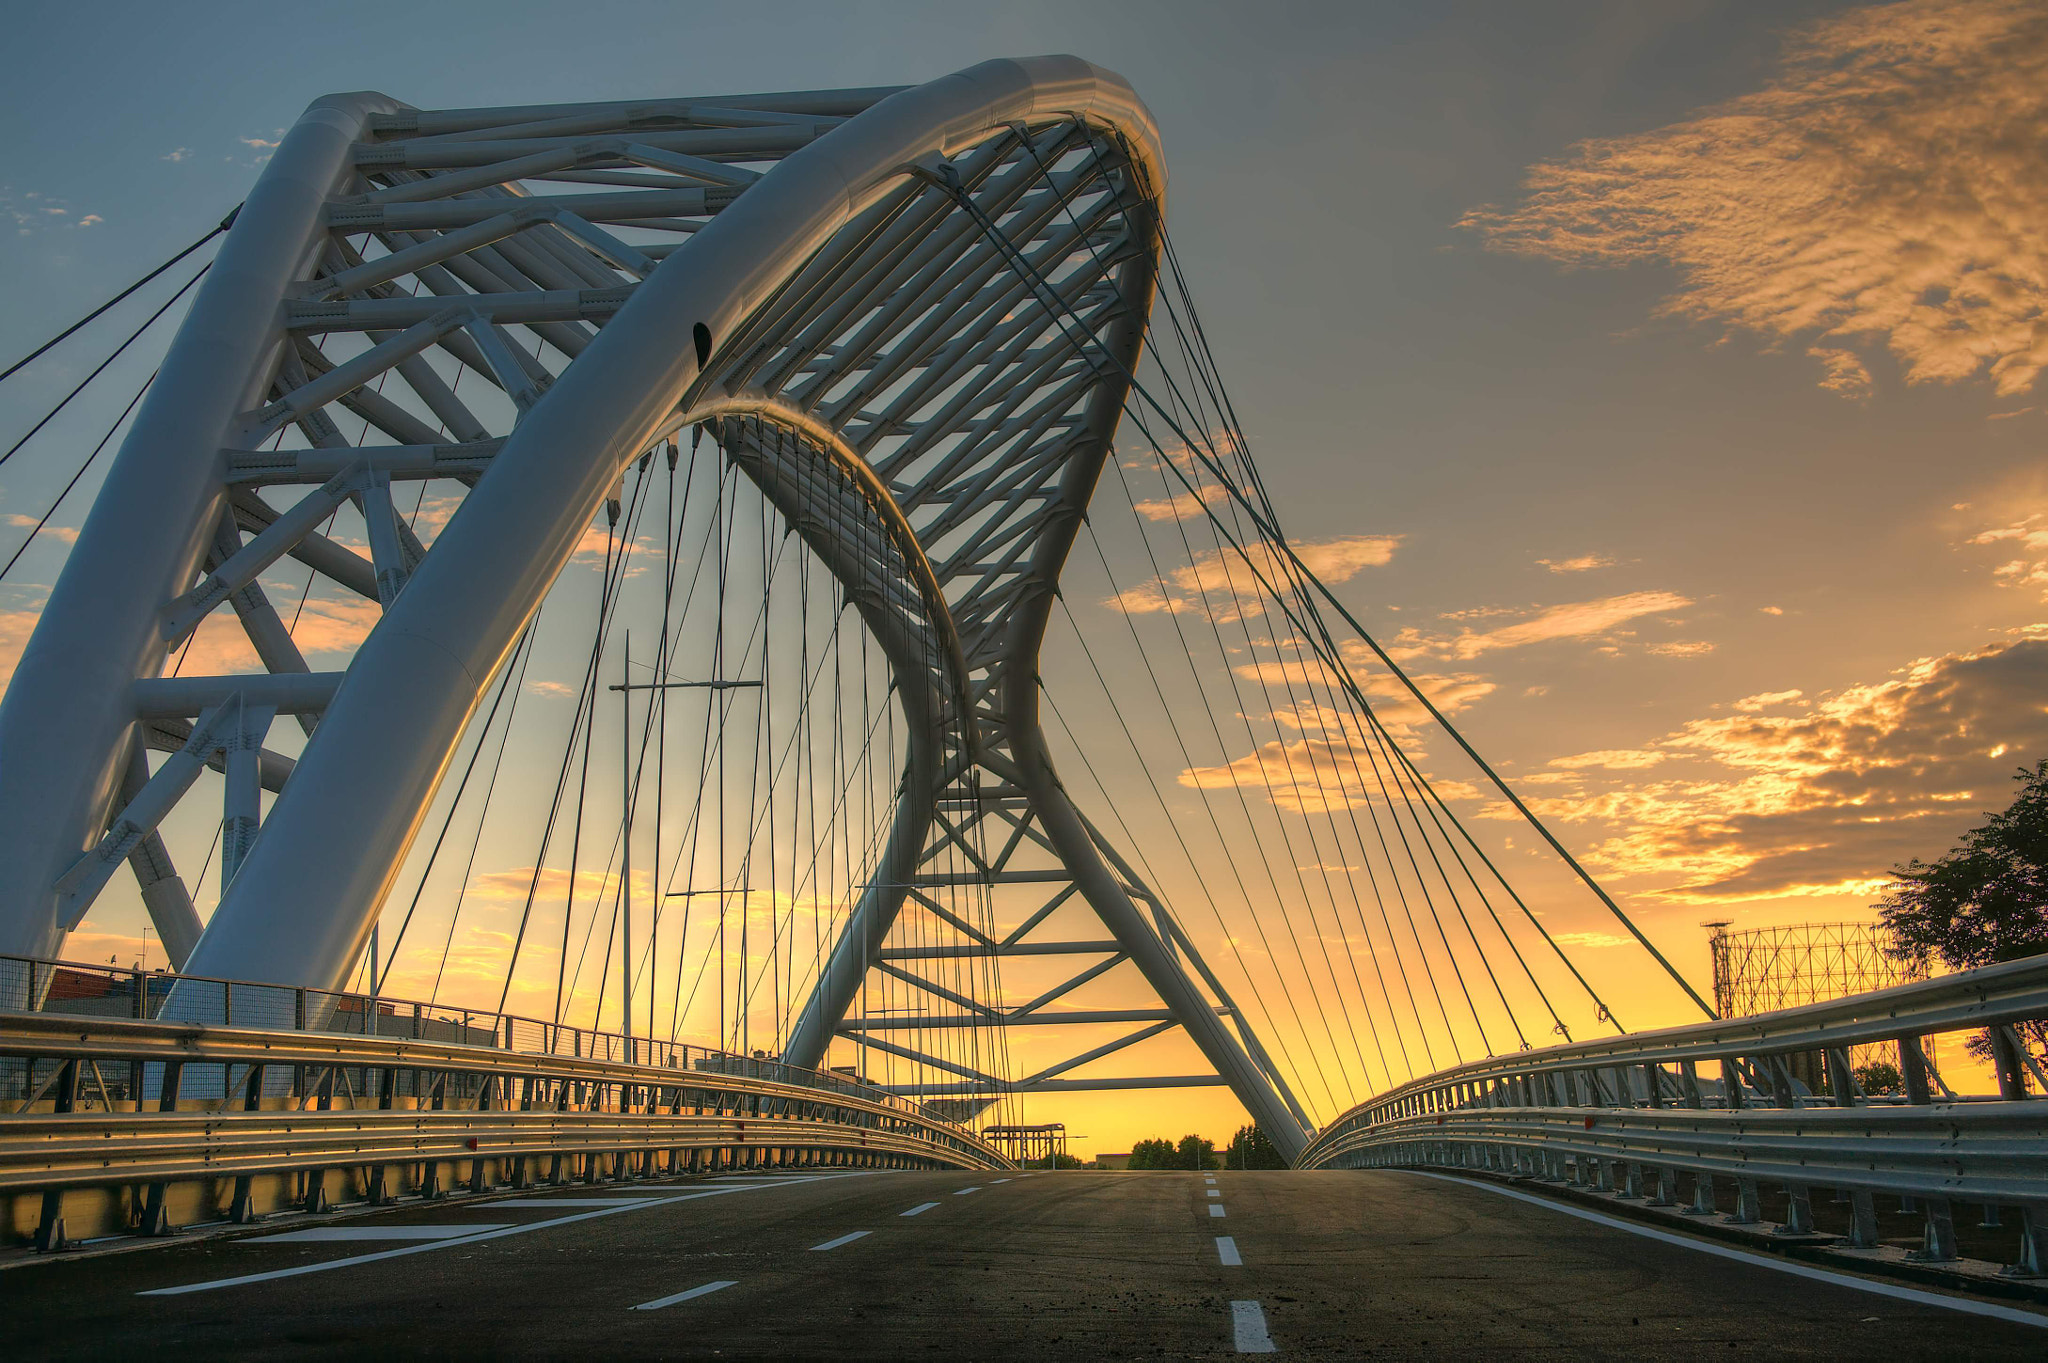 Photograph Ponte della Scienza - Bridge of the Science by Paolo Trofa on 500px